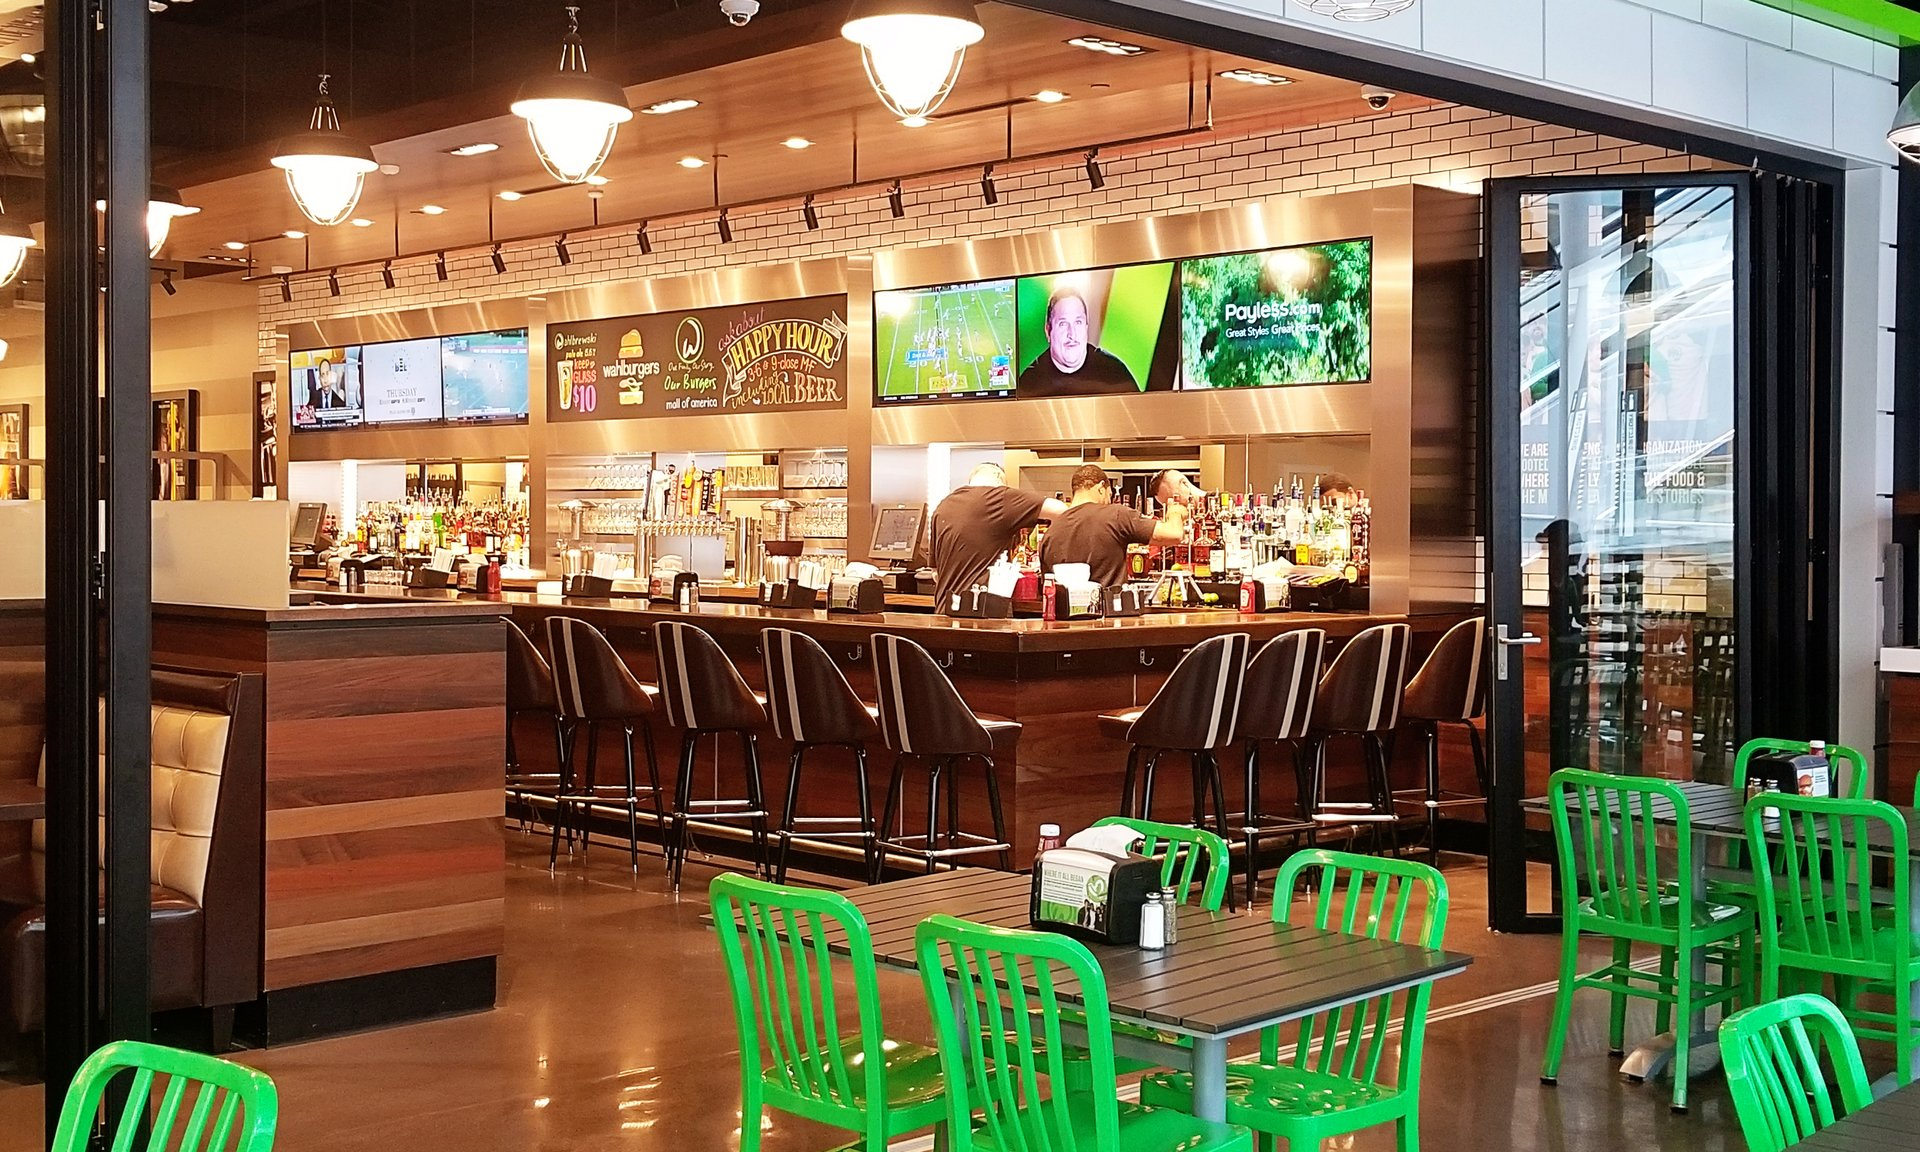 Wahlburgers is one of many mall of america restaurants.